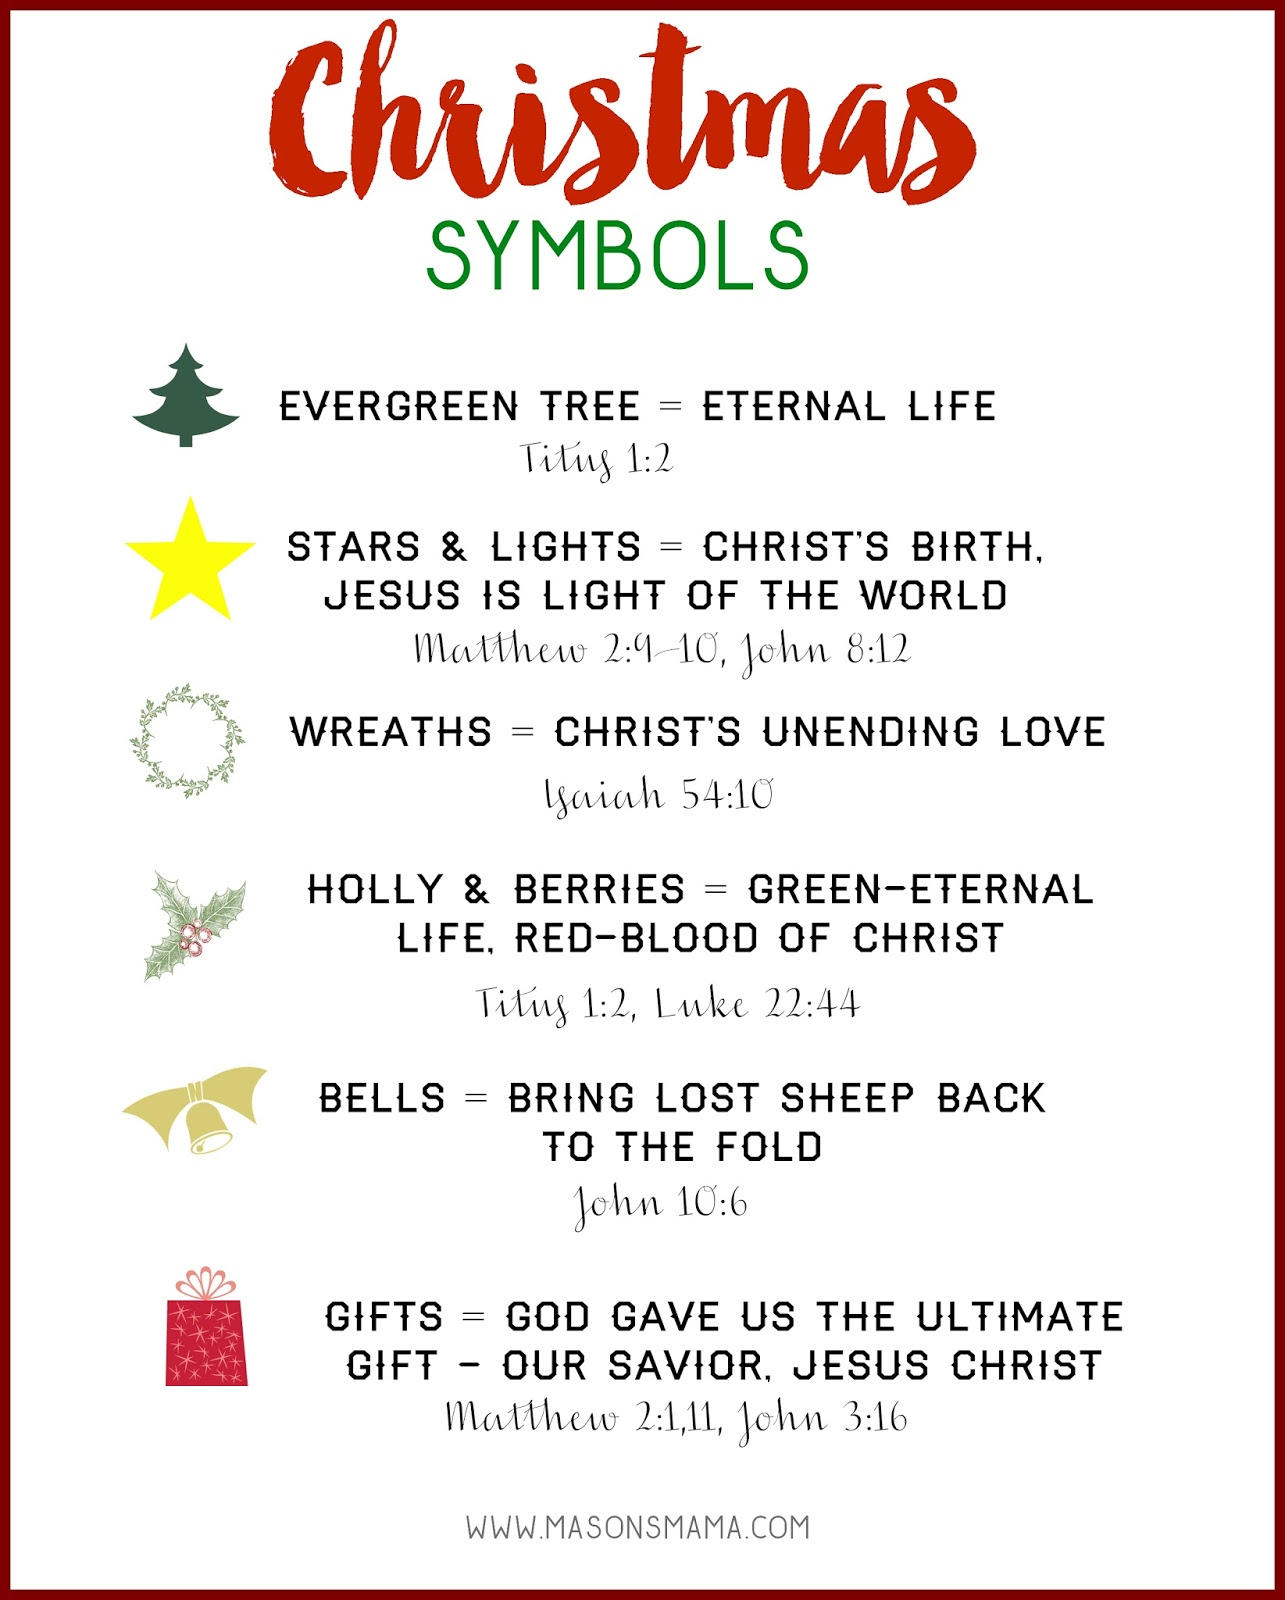 Hall Around Texas Christmas Symbols